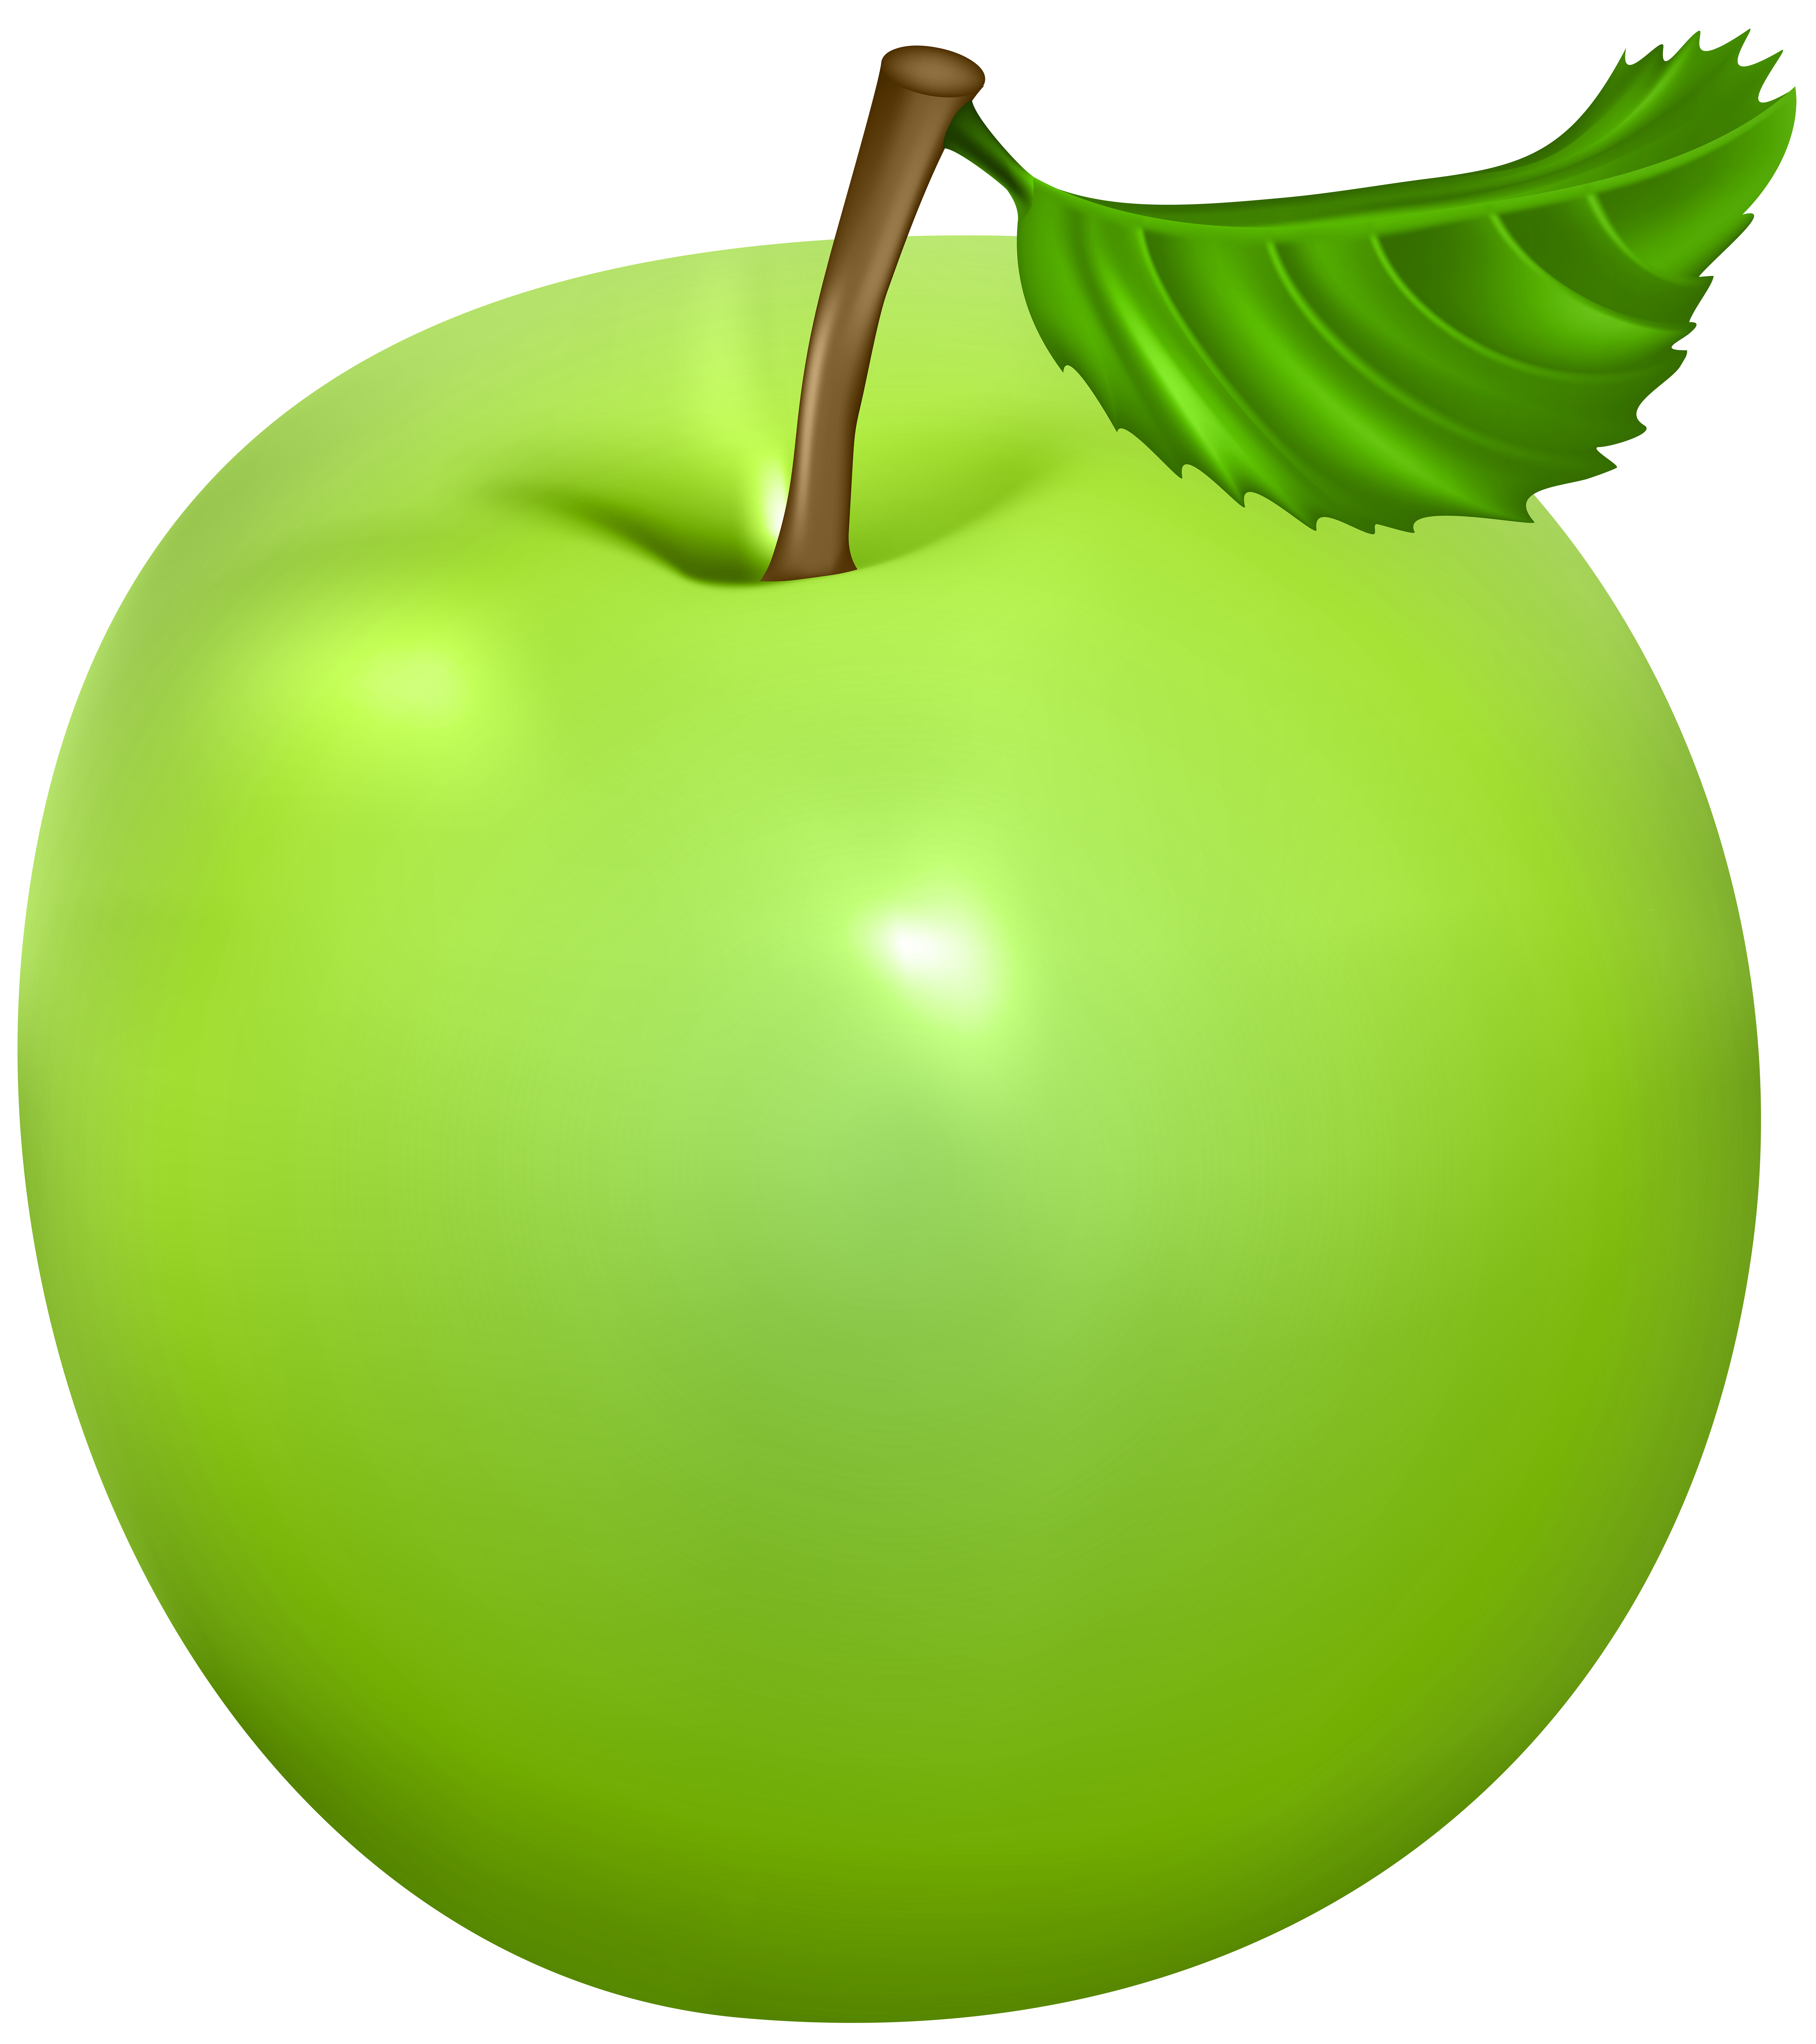 Clipart green apple png freeuse stock Green Apple PNG Clip Art Image - Best WEB Clipart png freeuse stock